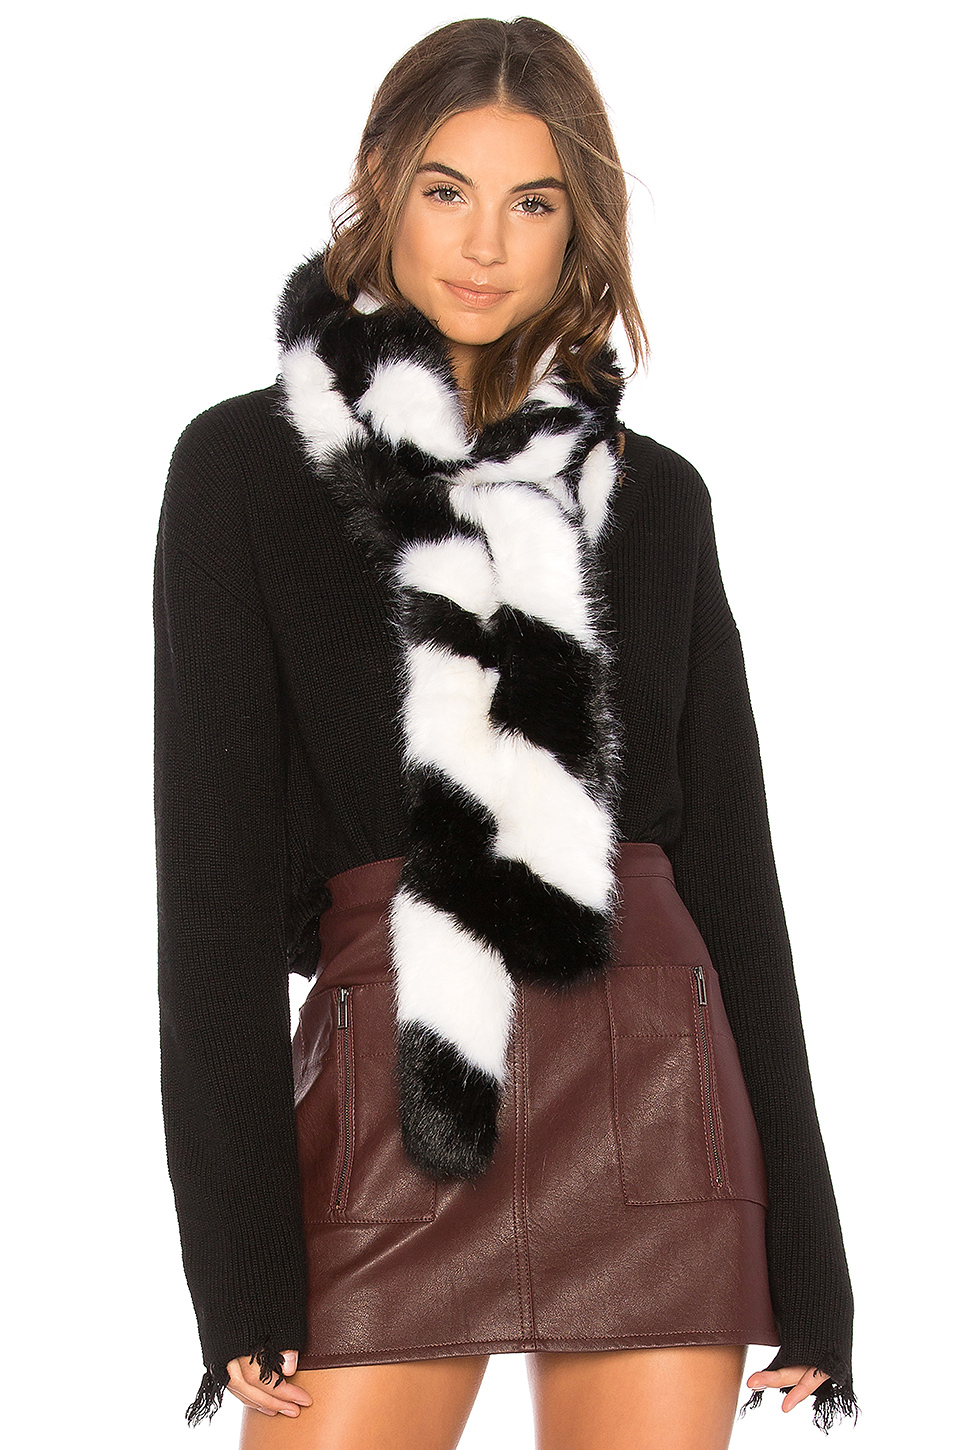 Charlotte Simone Faux Fur Lacey in Black & White